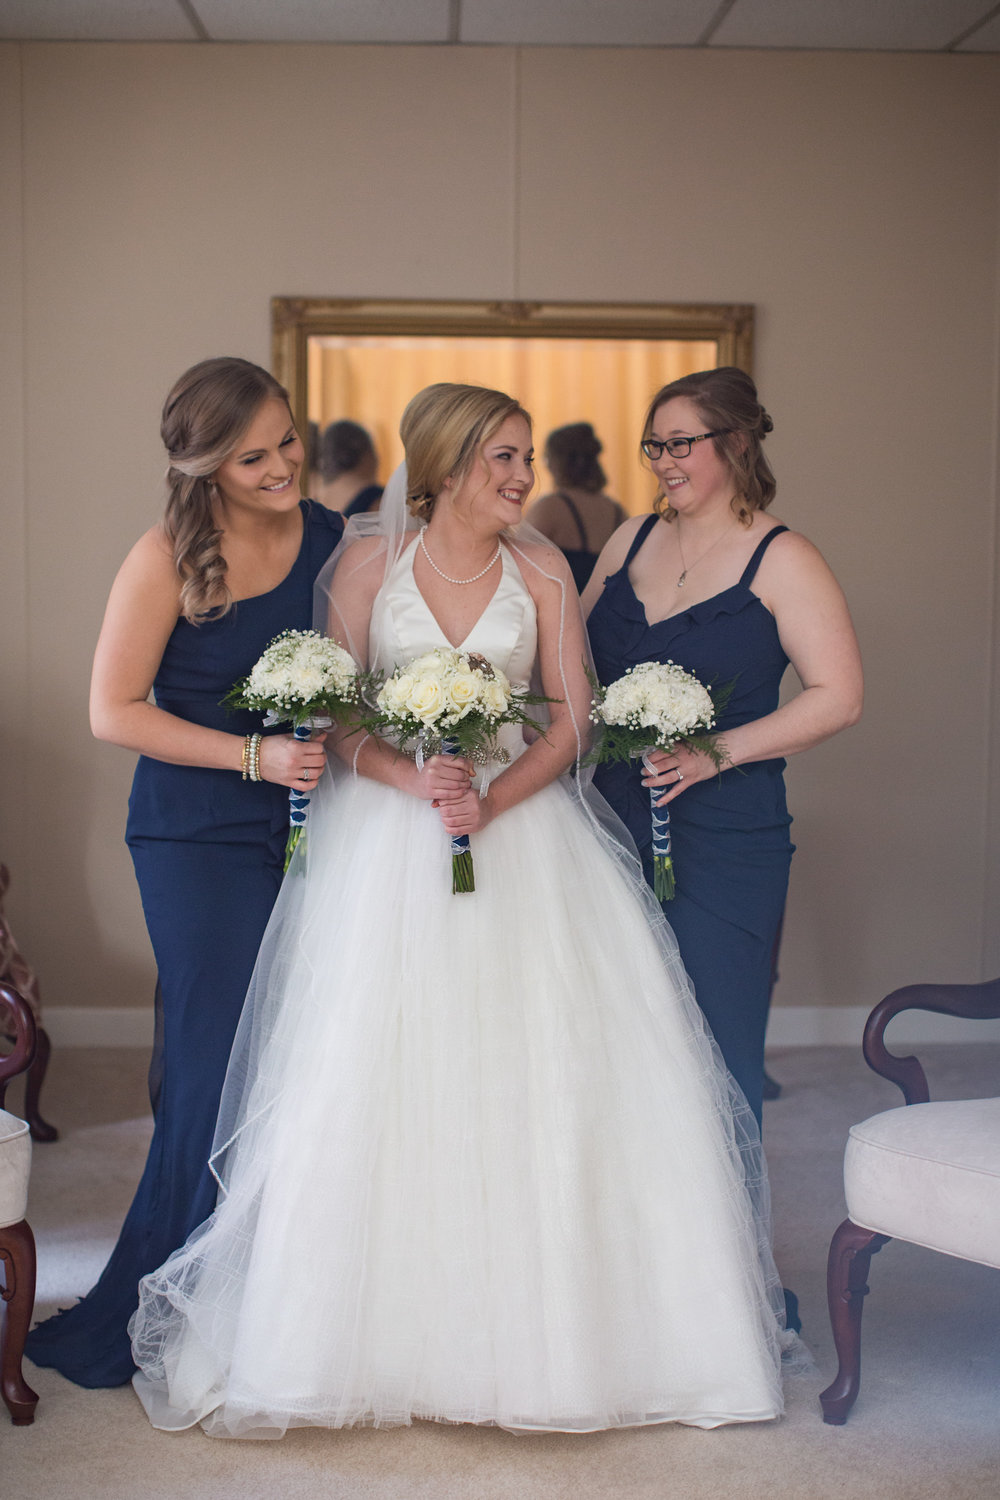 bride-with-bridesmaids-on-wedding-day